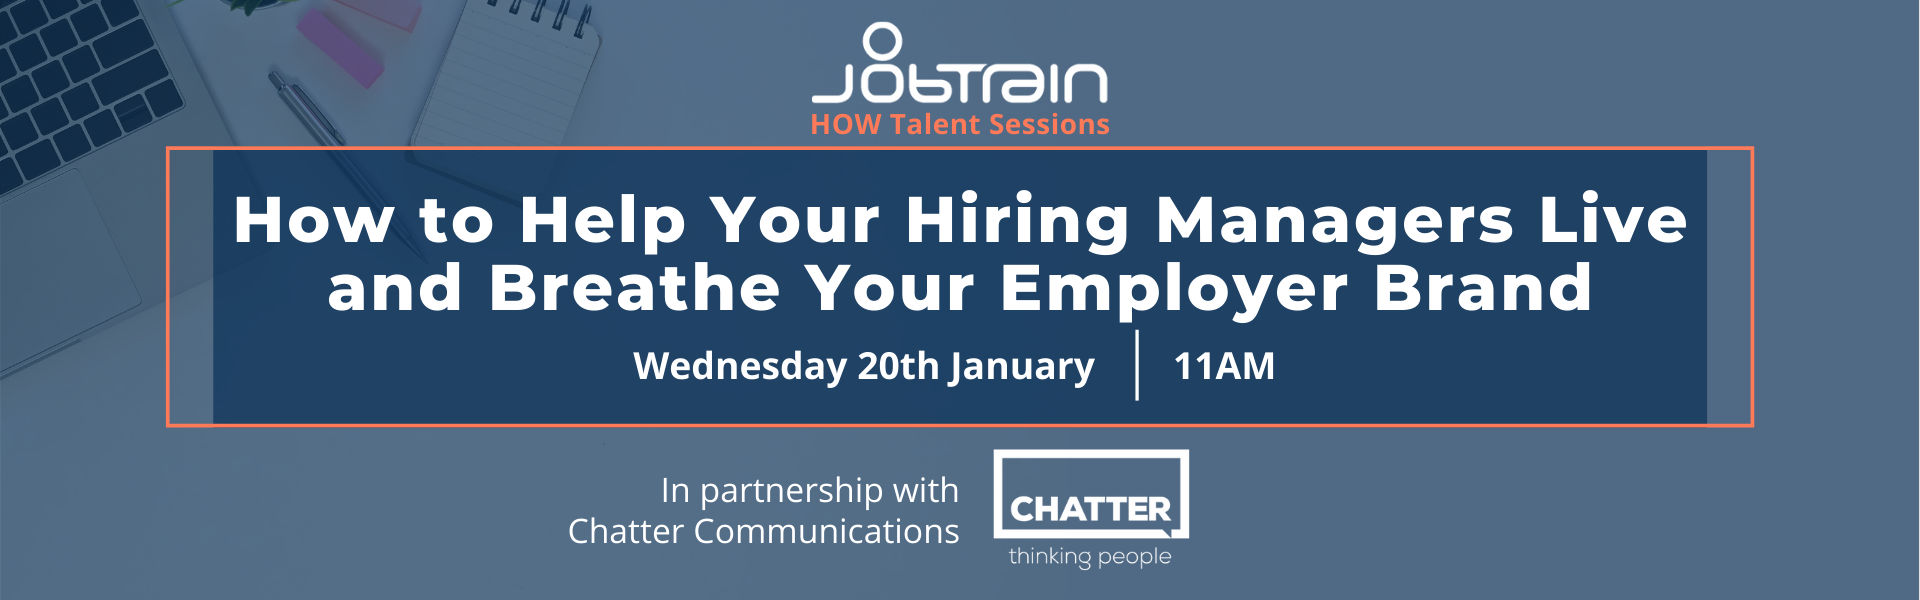 WEBINAR | How to Help your Hiring Managers Live and Breathe Your Employer Brand